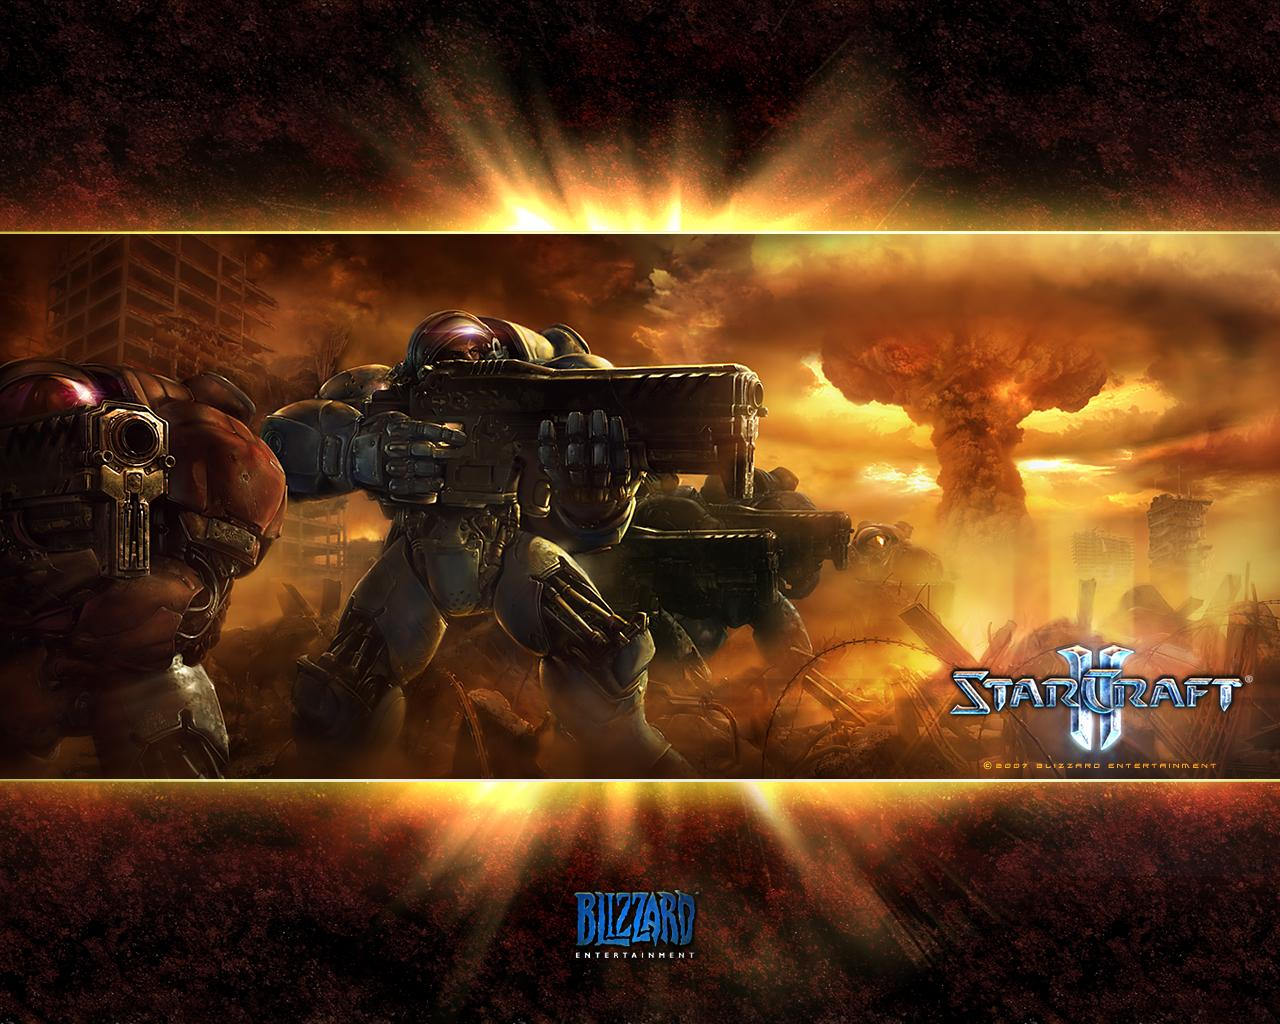 Wallpapers Starcraft 2 Wallpaper